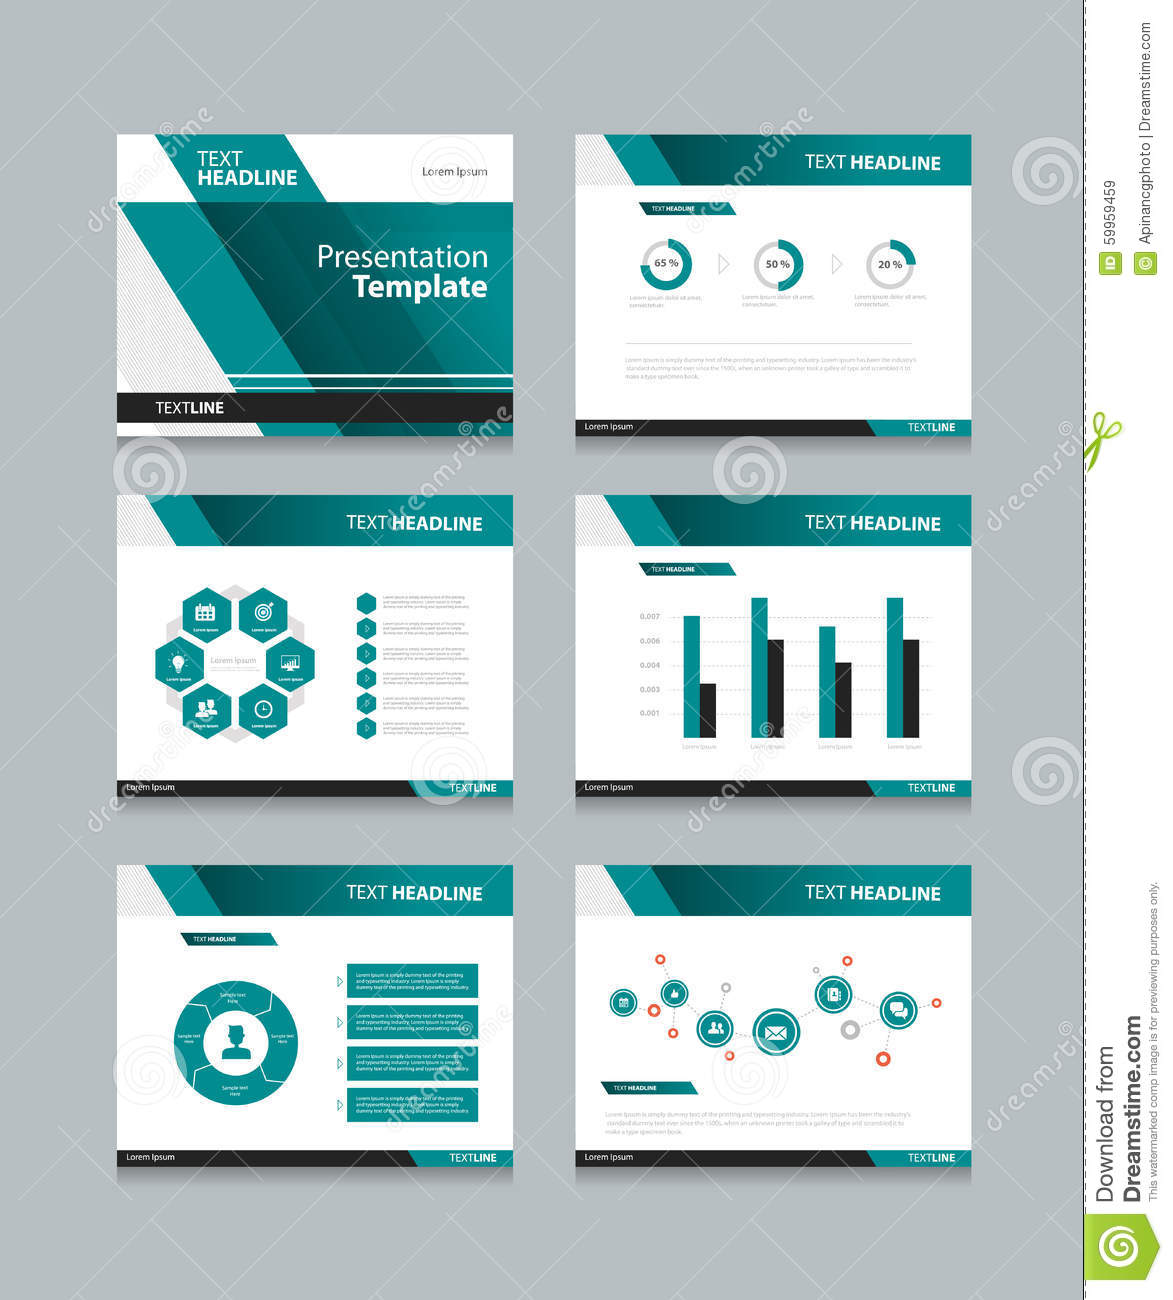 business presentation and powerpoint template slides background, Presentation Background Template, Presentation templates